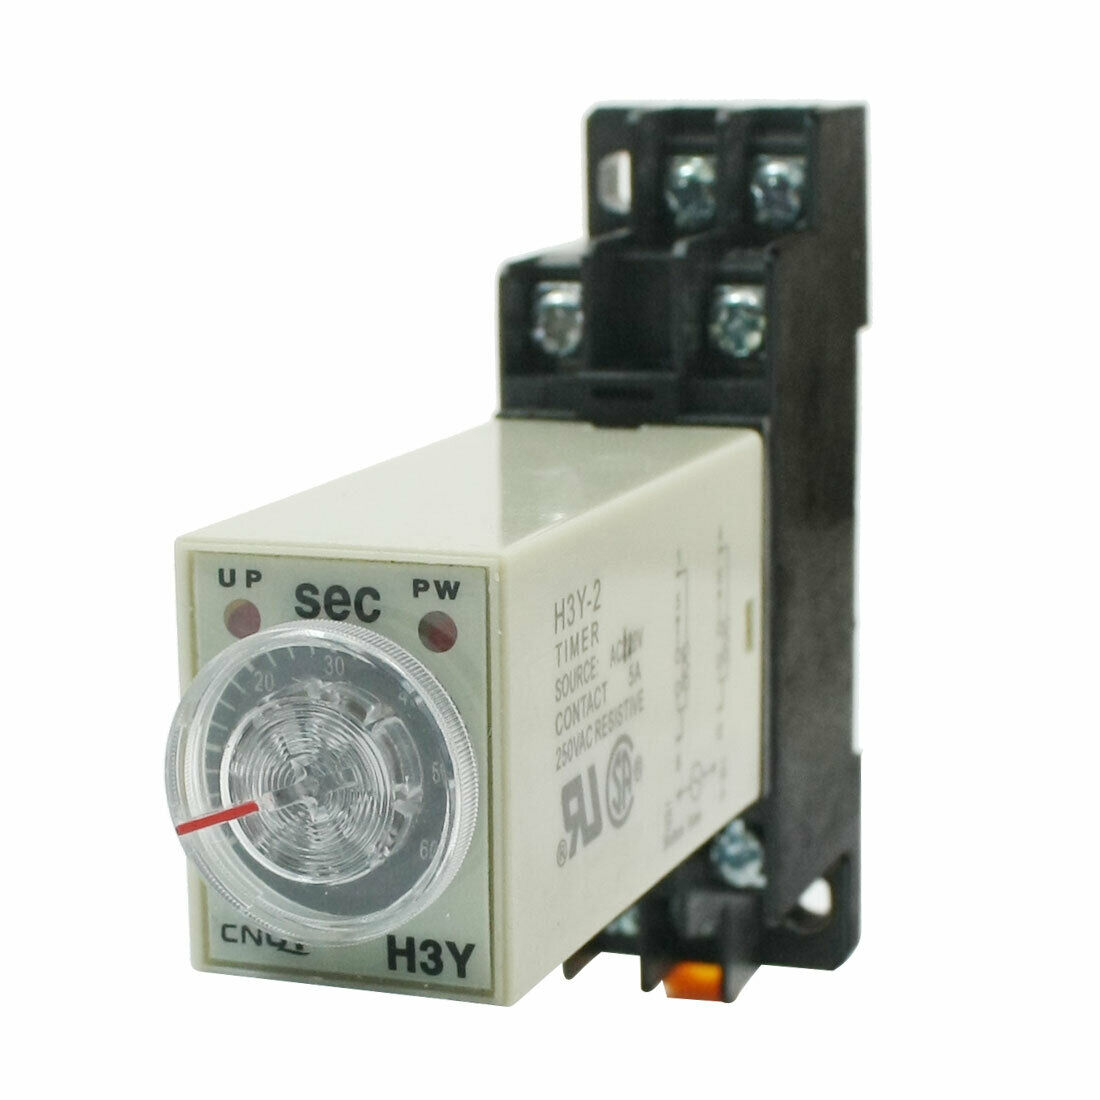 0-60 SECONDS DELAY Timer Time Timing Relay AC 110V H3Y-2 w Base ...